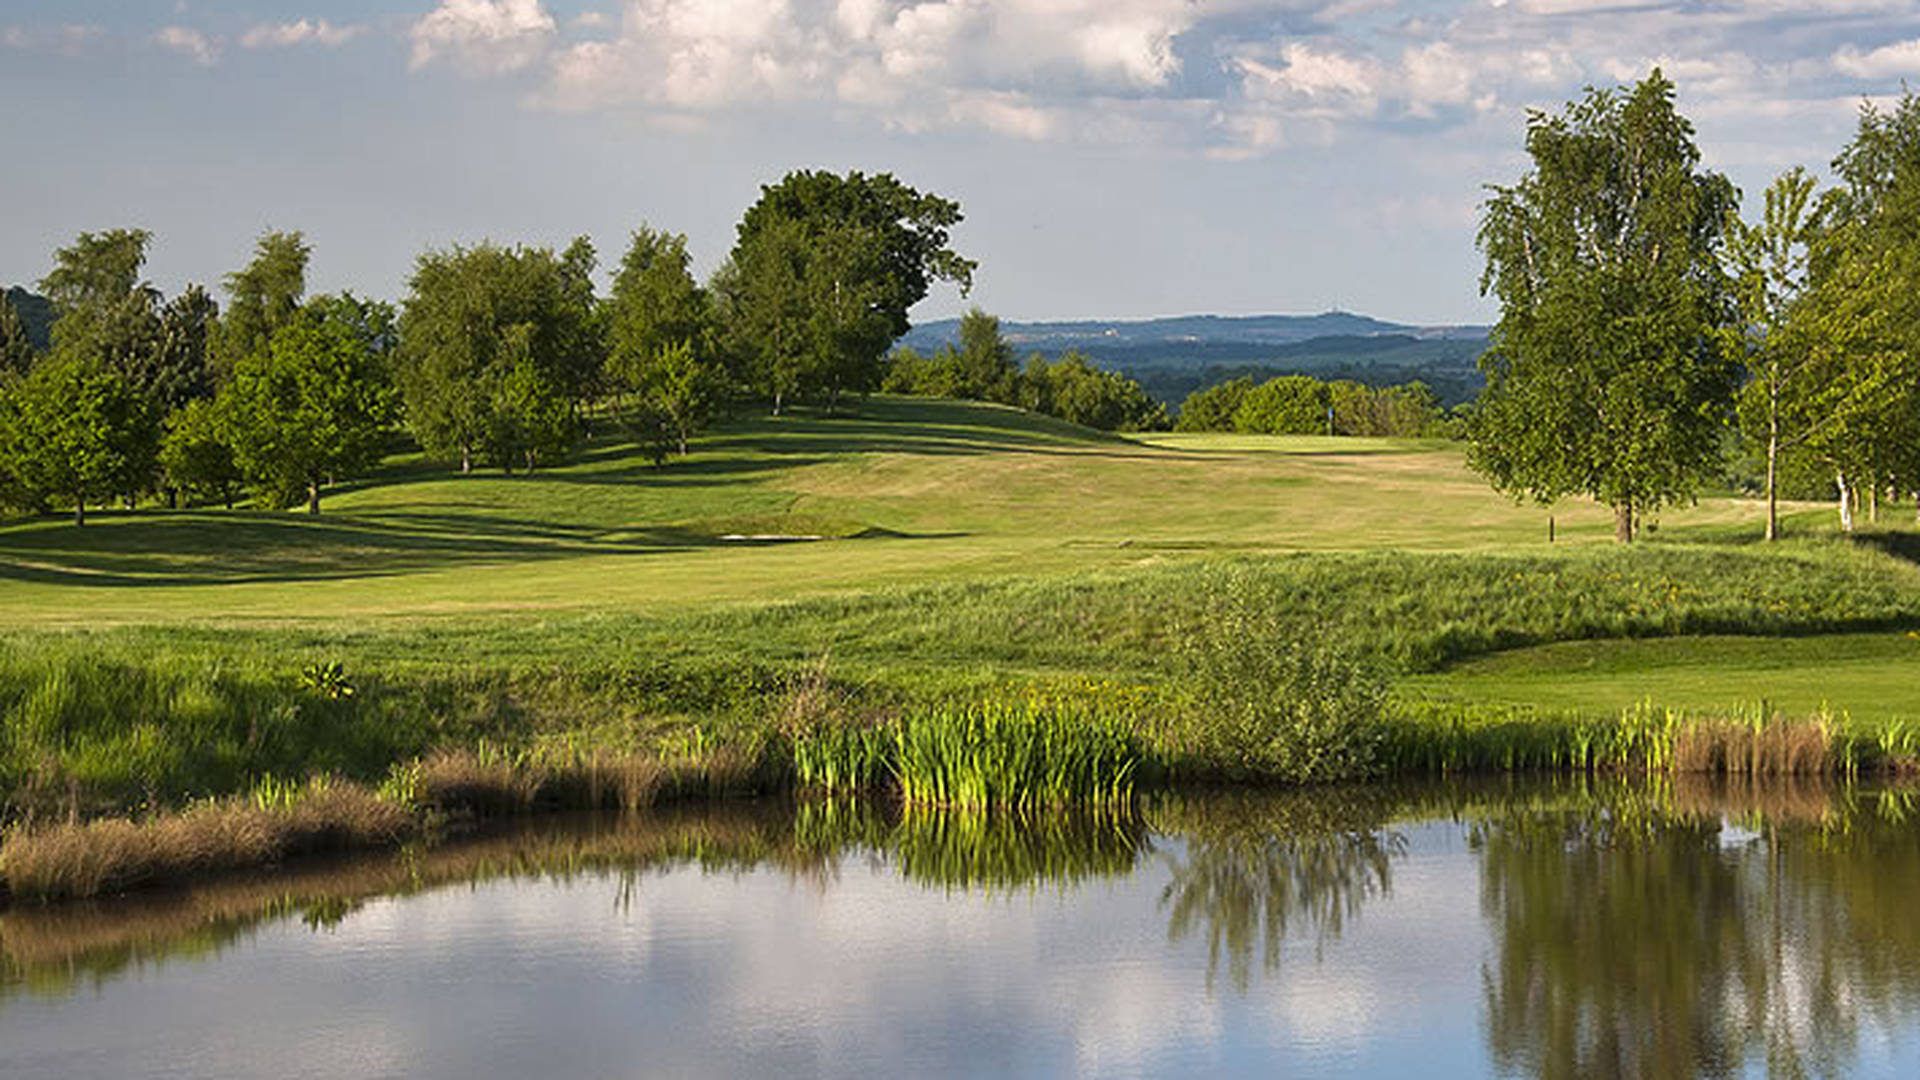 Golf at Wharton Park Image